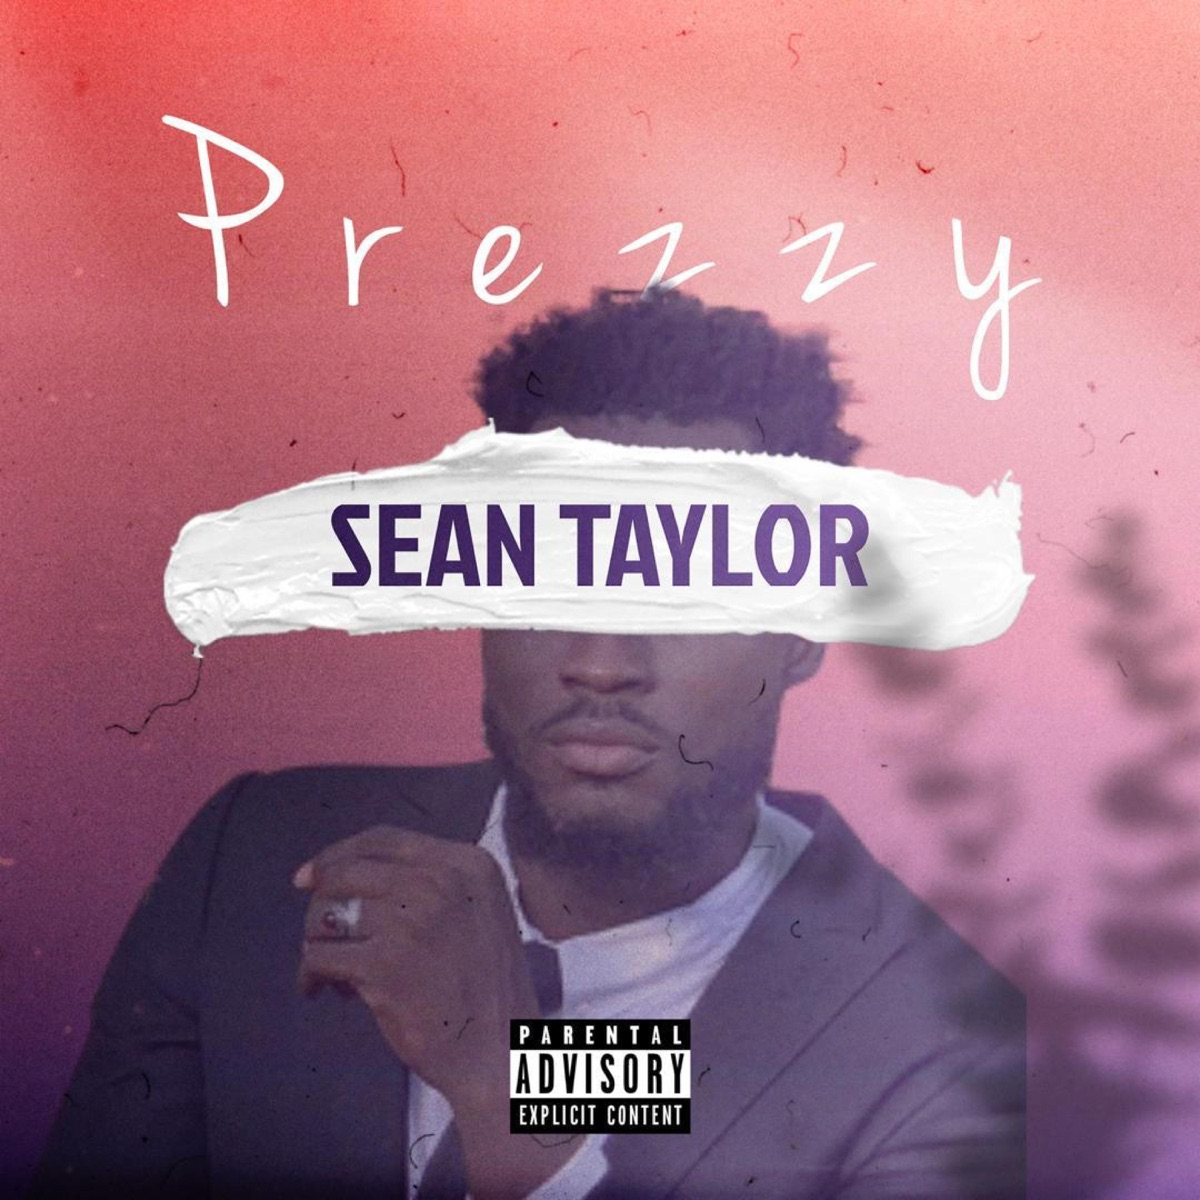 Sean Taylor – Prezzy (Freestyle)